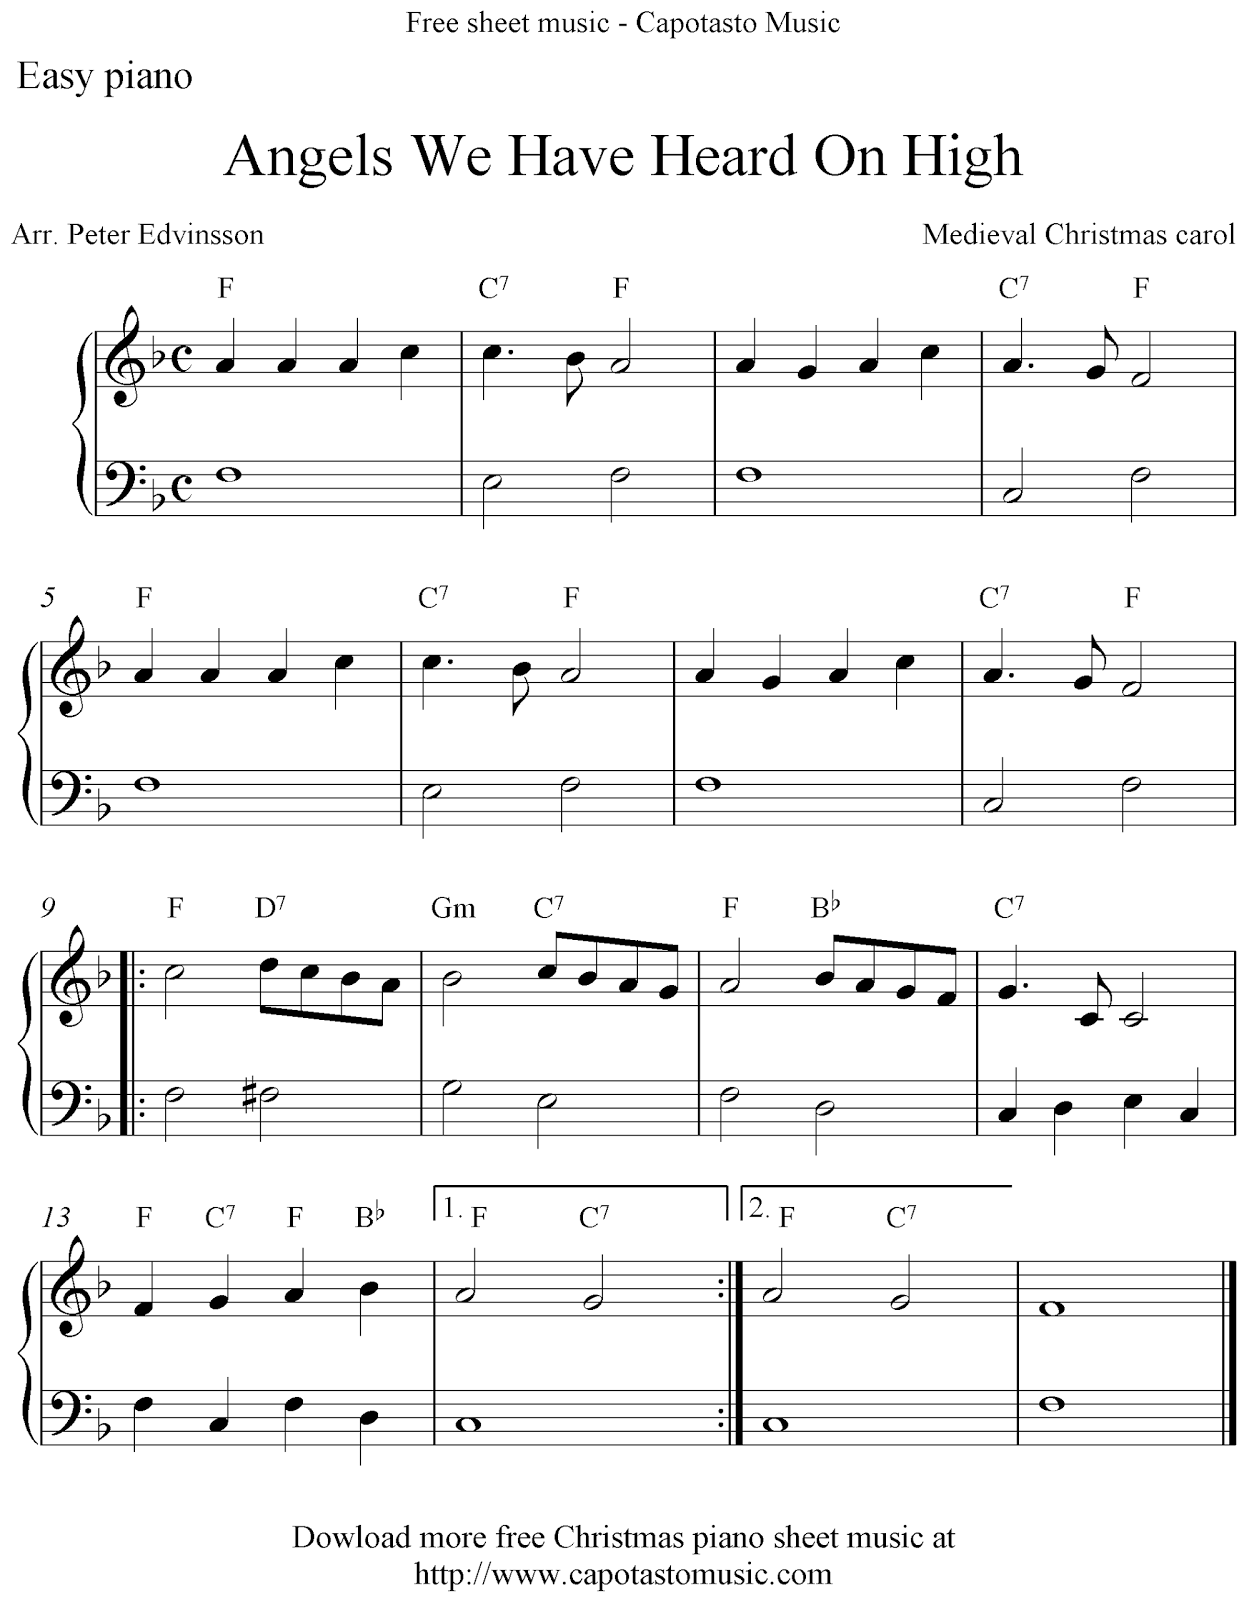 Free Christmas piano sheet music solo, Angels We Have Heard On High